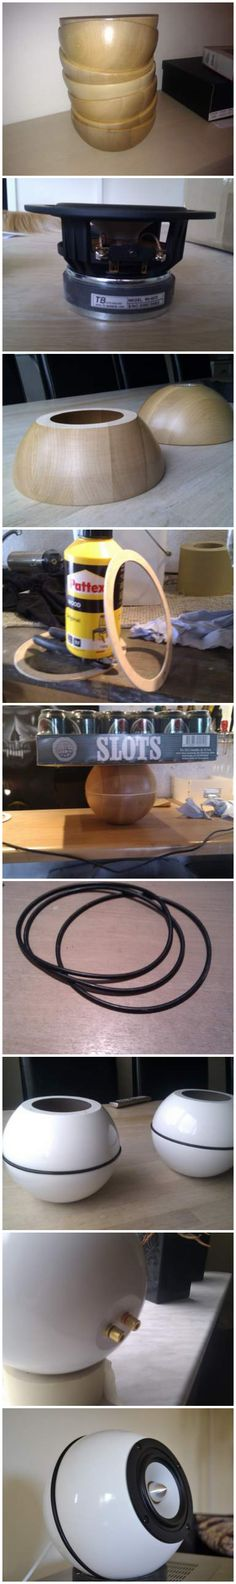 DIY HiFi Speakers...amazing work!!!